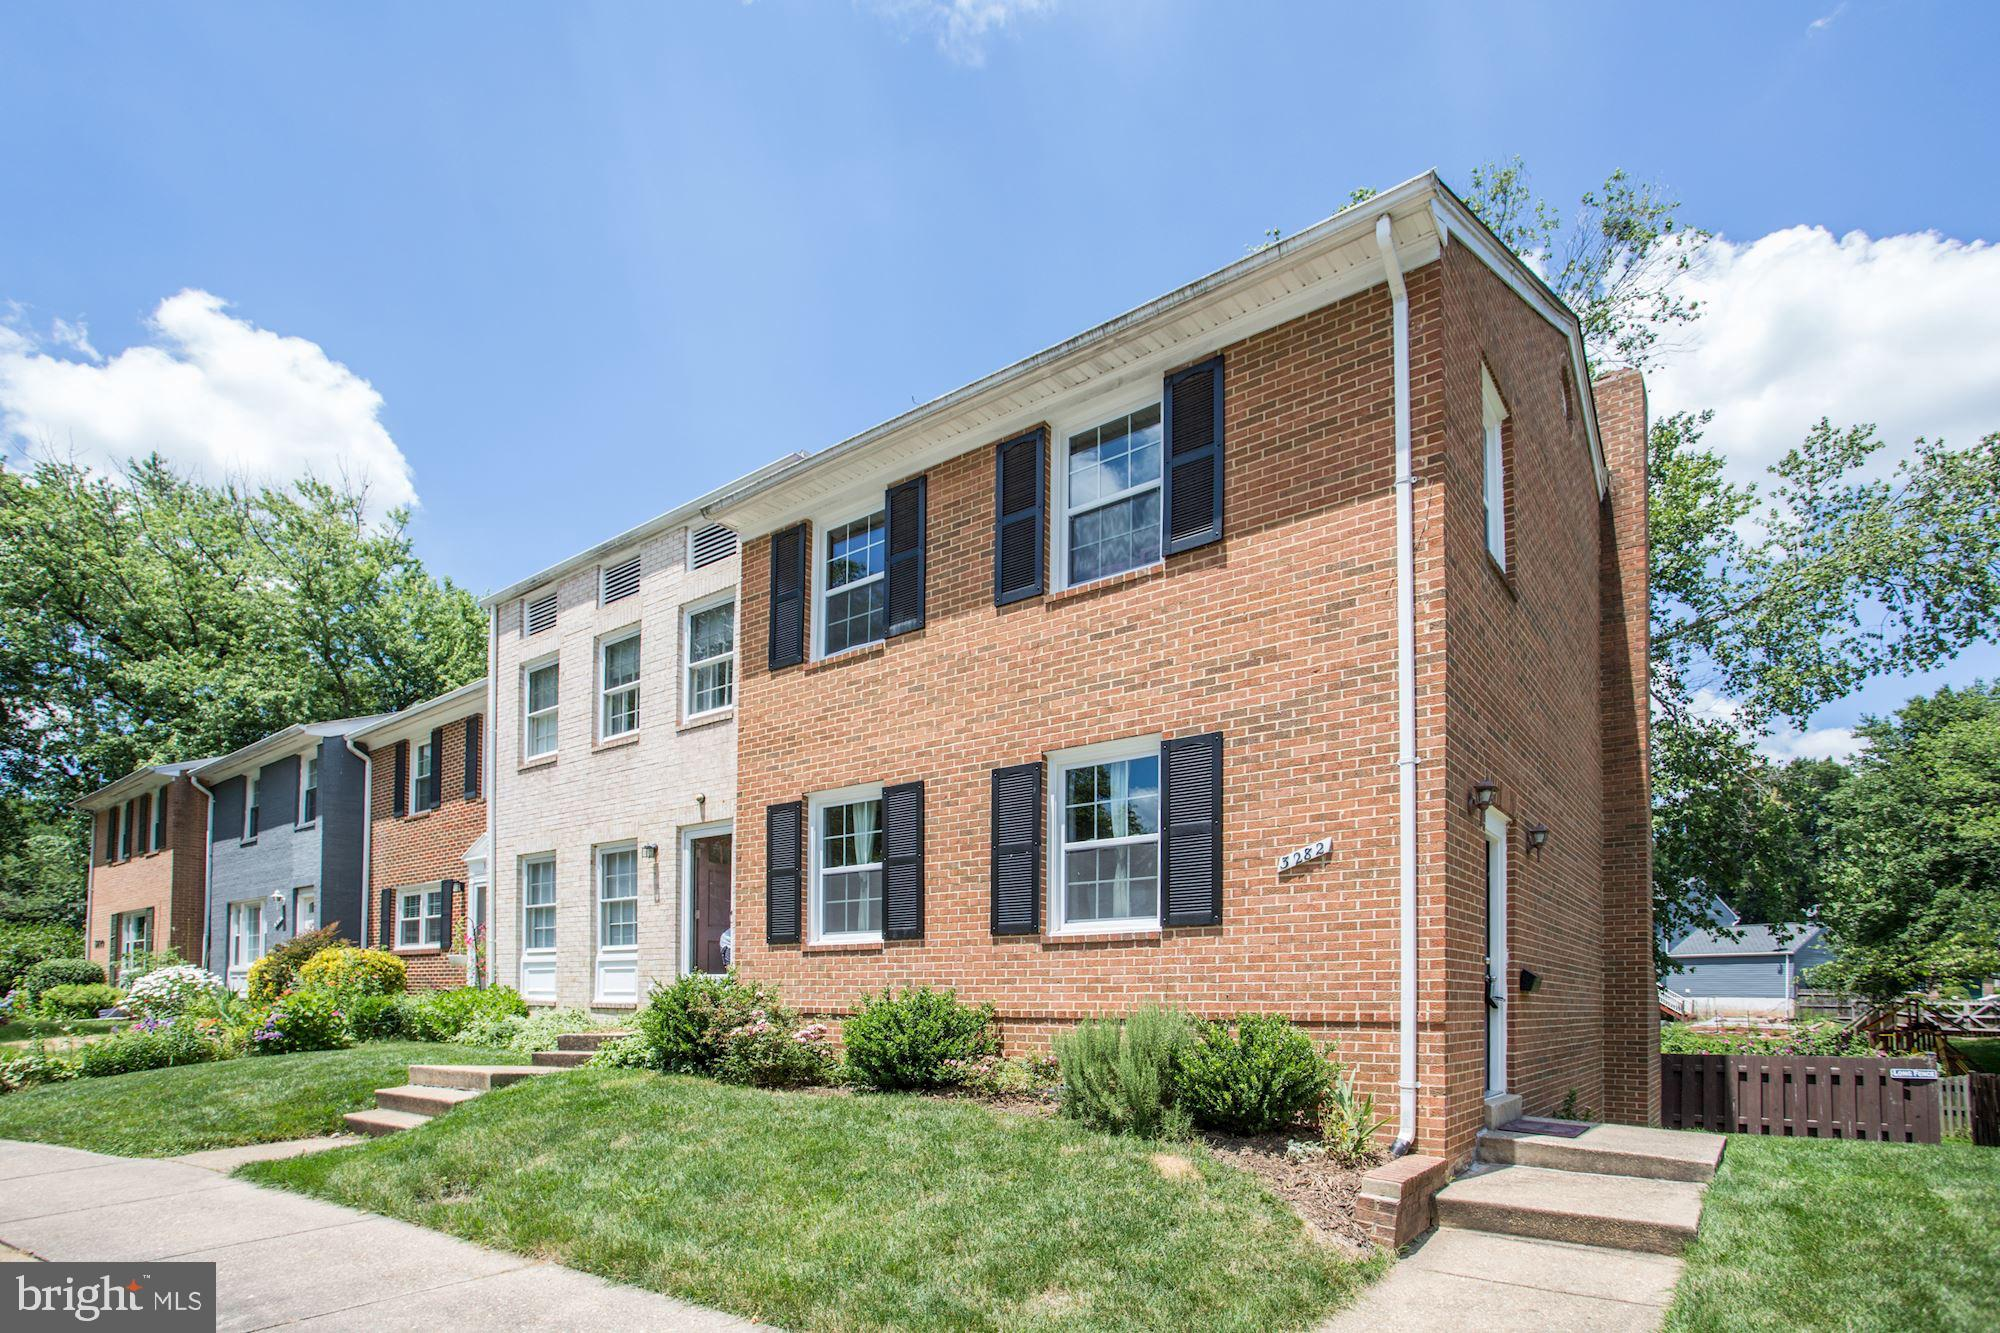 Offer Deadline is Monday July 6 at 3pm. Beautifully updated 3 bedroom, 2.5.5 bath end-unit townhouse backing up to a quiet meadow in Strathmeade Square! Completely renovated in 2018 and freshly painted in 2020, this lovely home is move-in ready. It's all been done so you don't have to do a thing! You'll get to enjoy a sunny living room, formal dining room and nicely updated kitchen with stainless steel appliances, granite counters and breakfast bar with pendant lighting. Upstairs find a master suite along with two more bedrooms sharing a hall bath. Enjoy a lower level rec room with wood burning fireplace that steps out to a rear patio and fully fenced back yard. Easy access to Fairfax Hospital! Moments to trails and tot lots, and Gallows Road, I-495 and all that Mosaic shops, dining and entertainment have to offer!